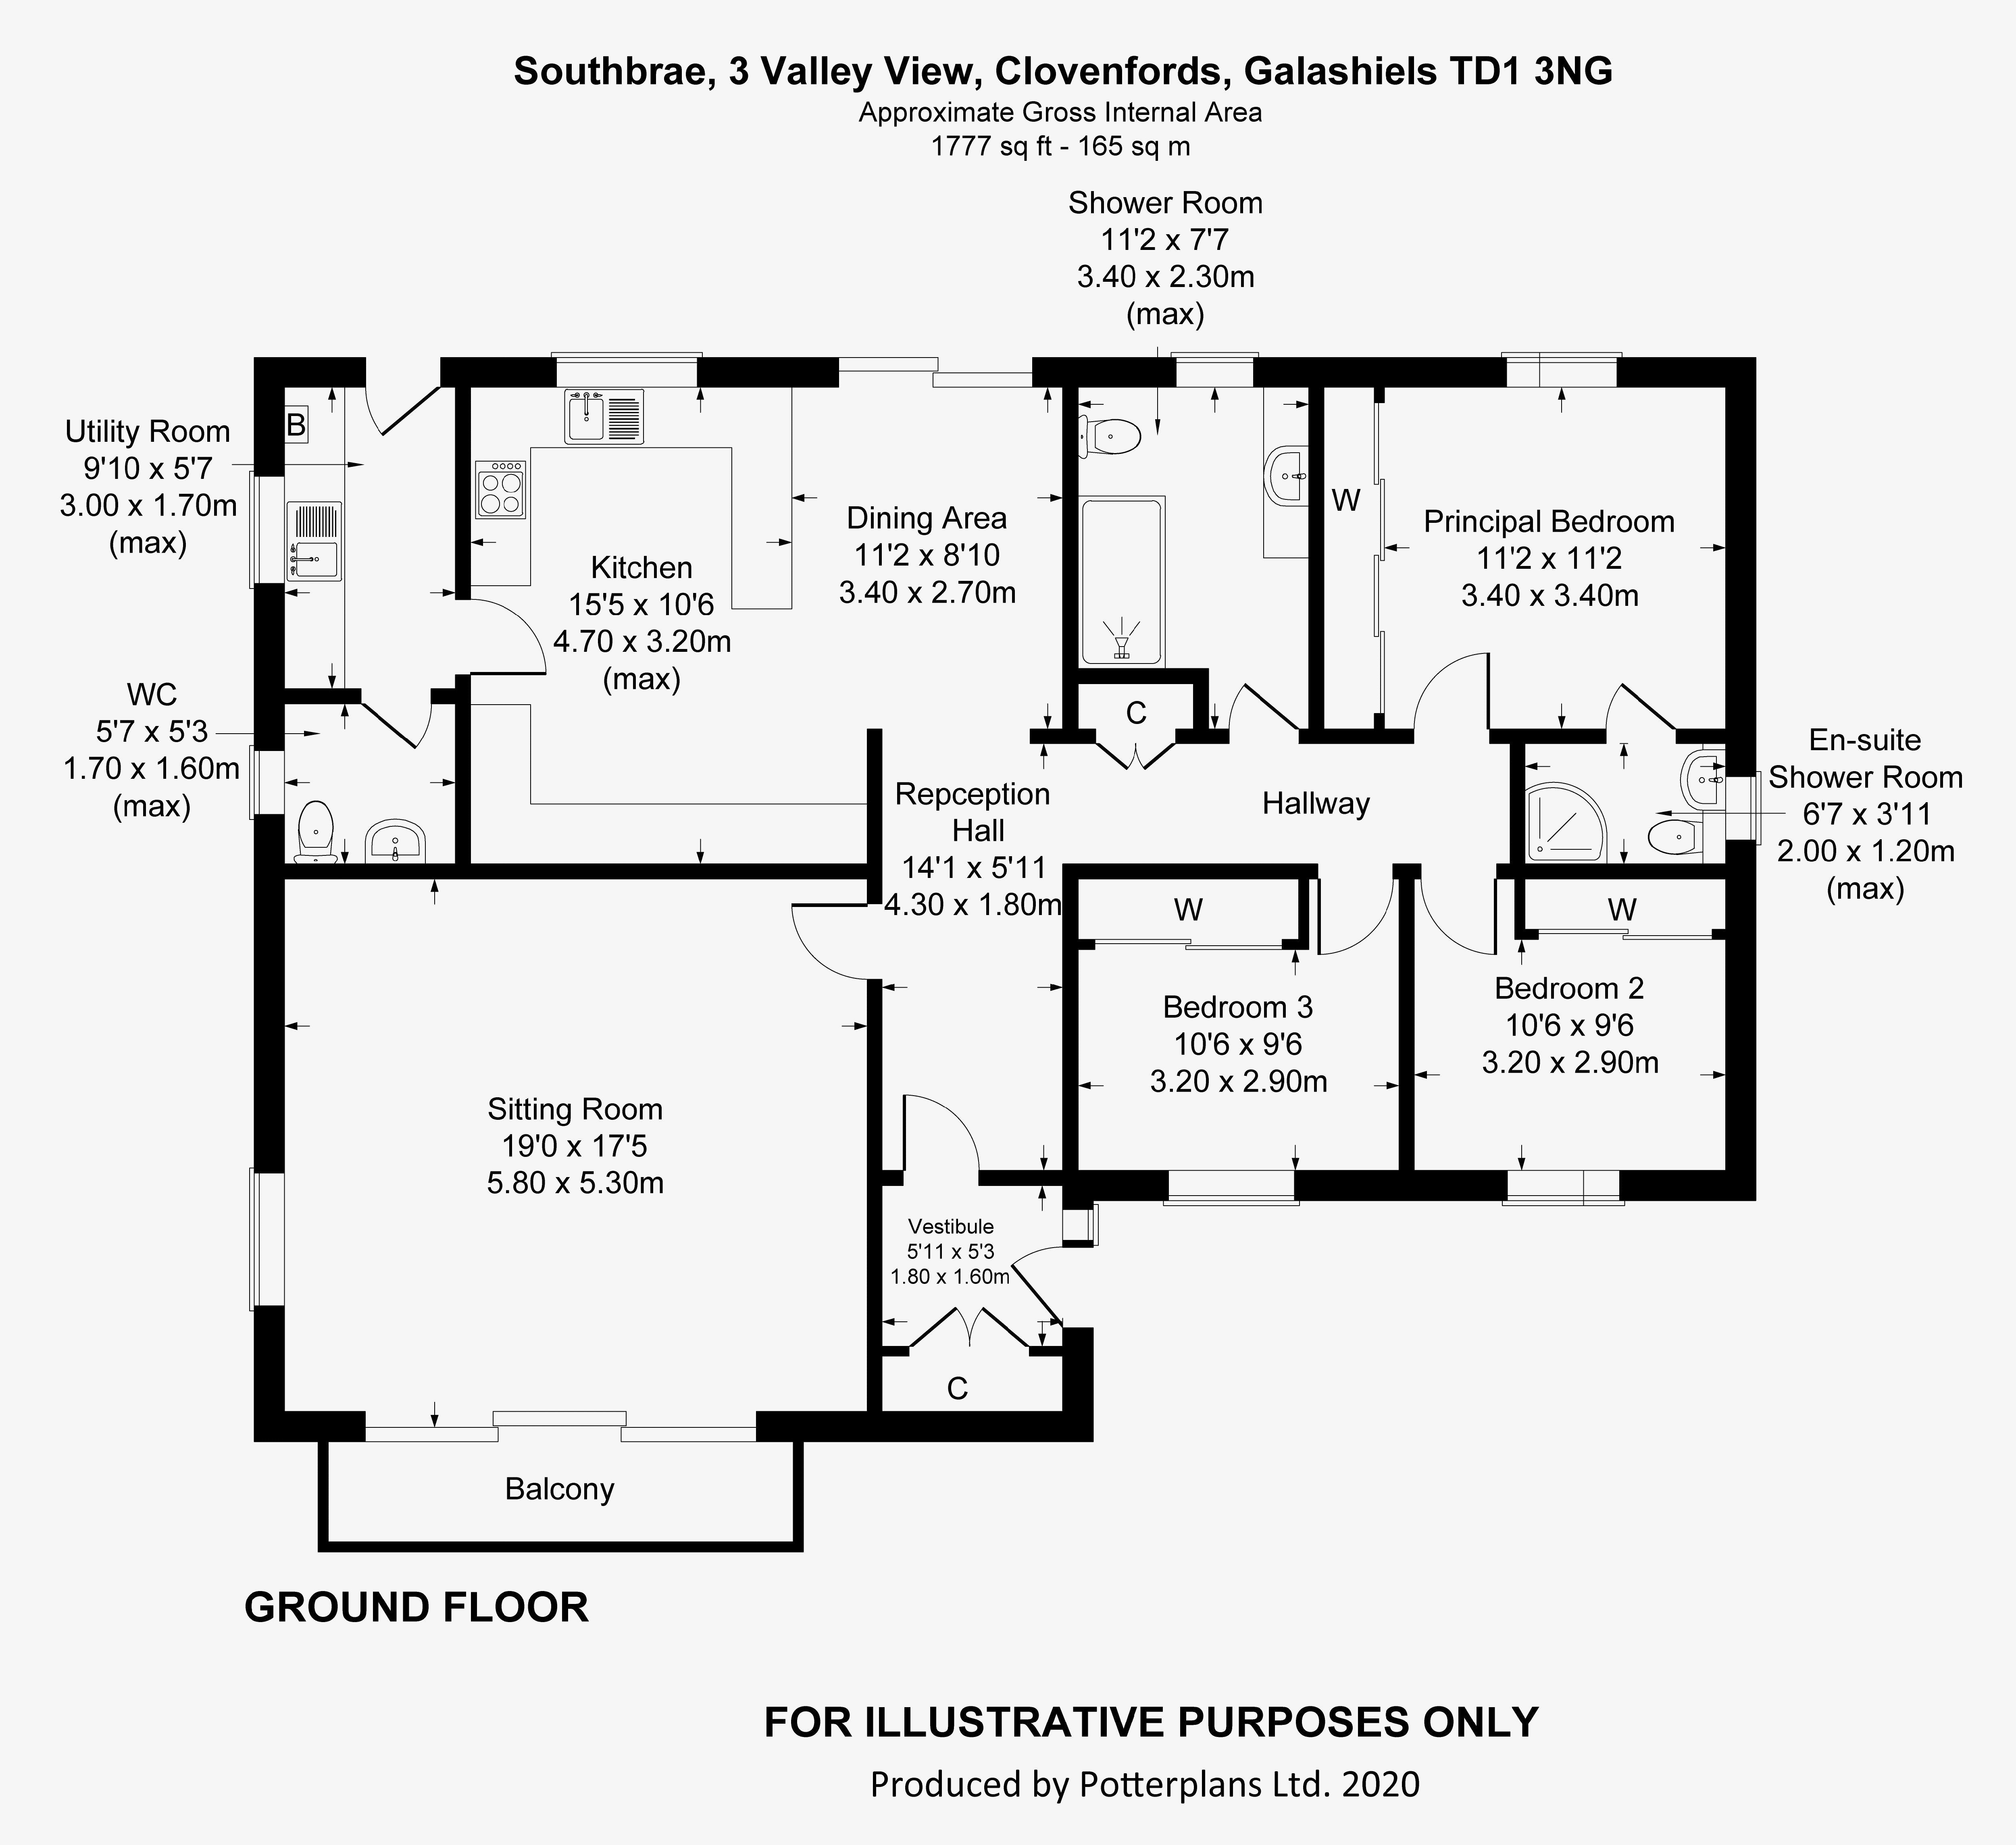 Southbrae Ground Floor